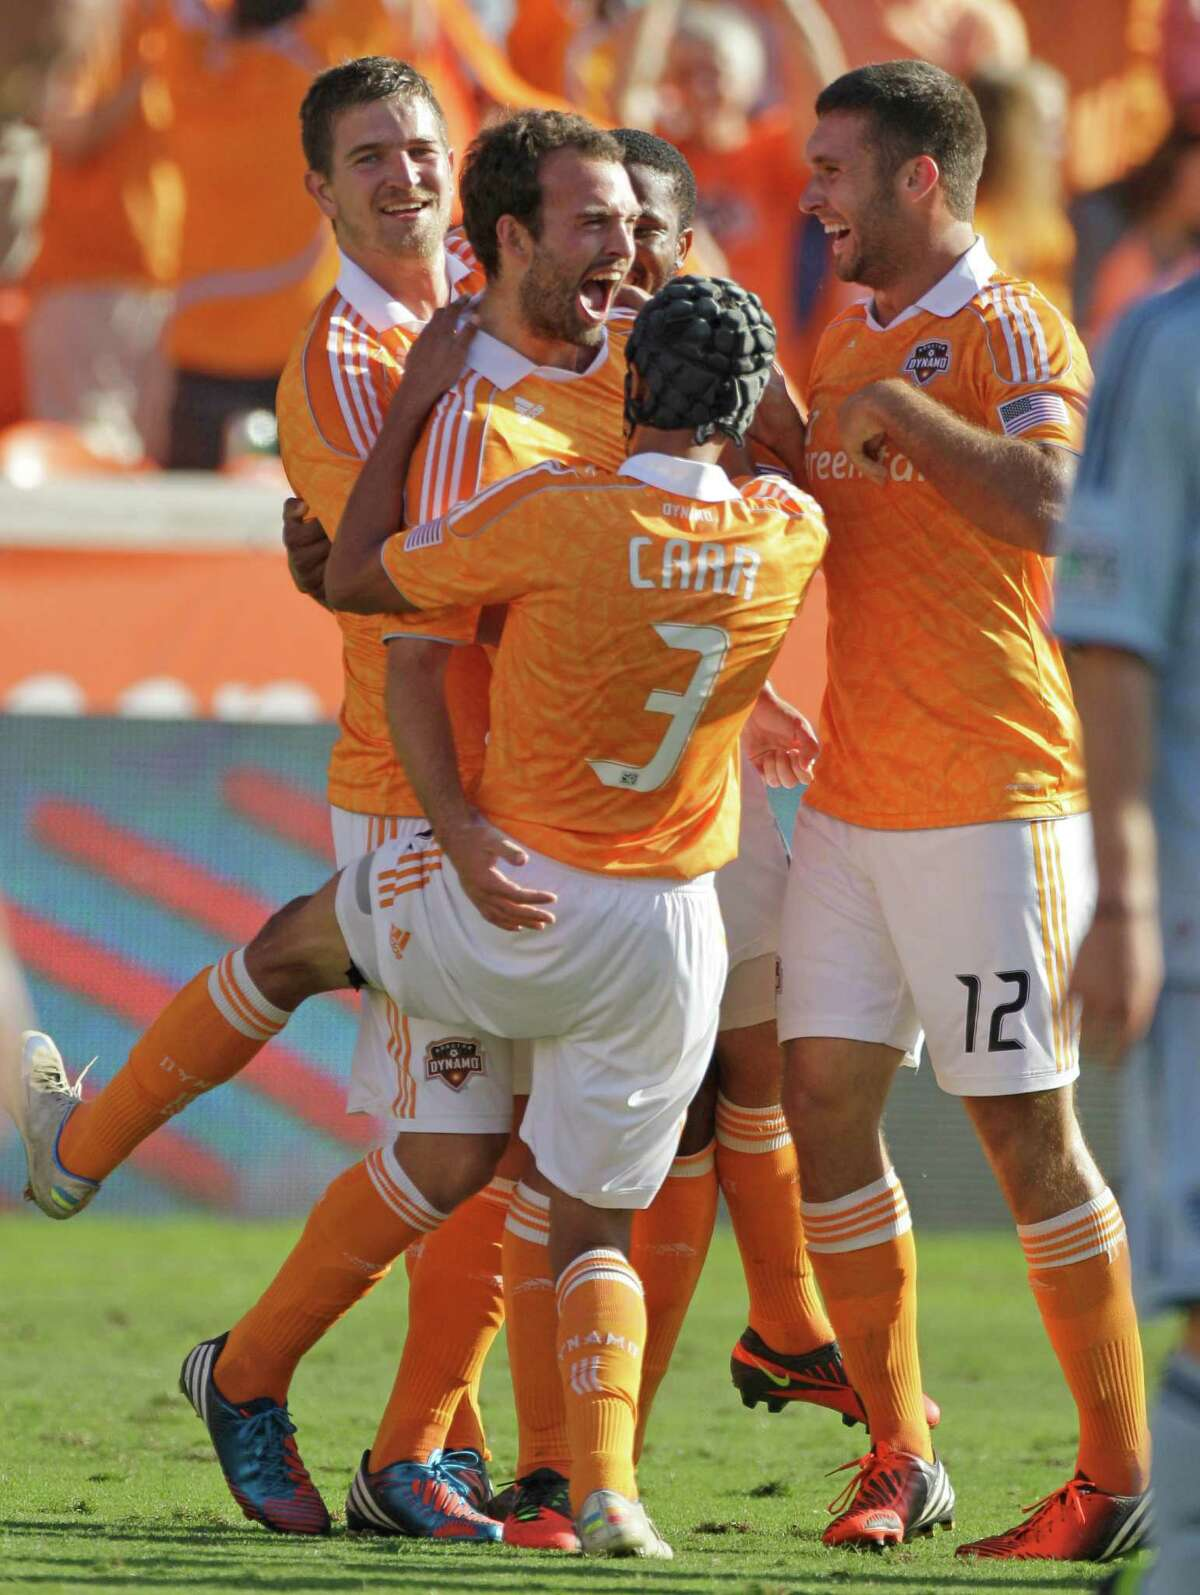 Houston Dynamo Adam Moffat, left center, celebrates his goal with teammate (3) Calen Carr and Will bruin, right, and others during first half against the the Sporting Kansas City in the MLS Eastern Conference semifinal at the BBVA Compass Stadium Sunday, Nov. 4, 2012, in Houston.